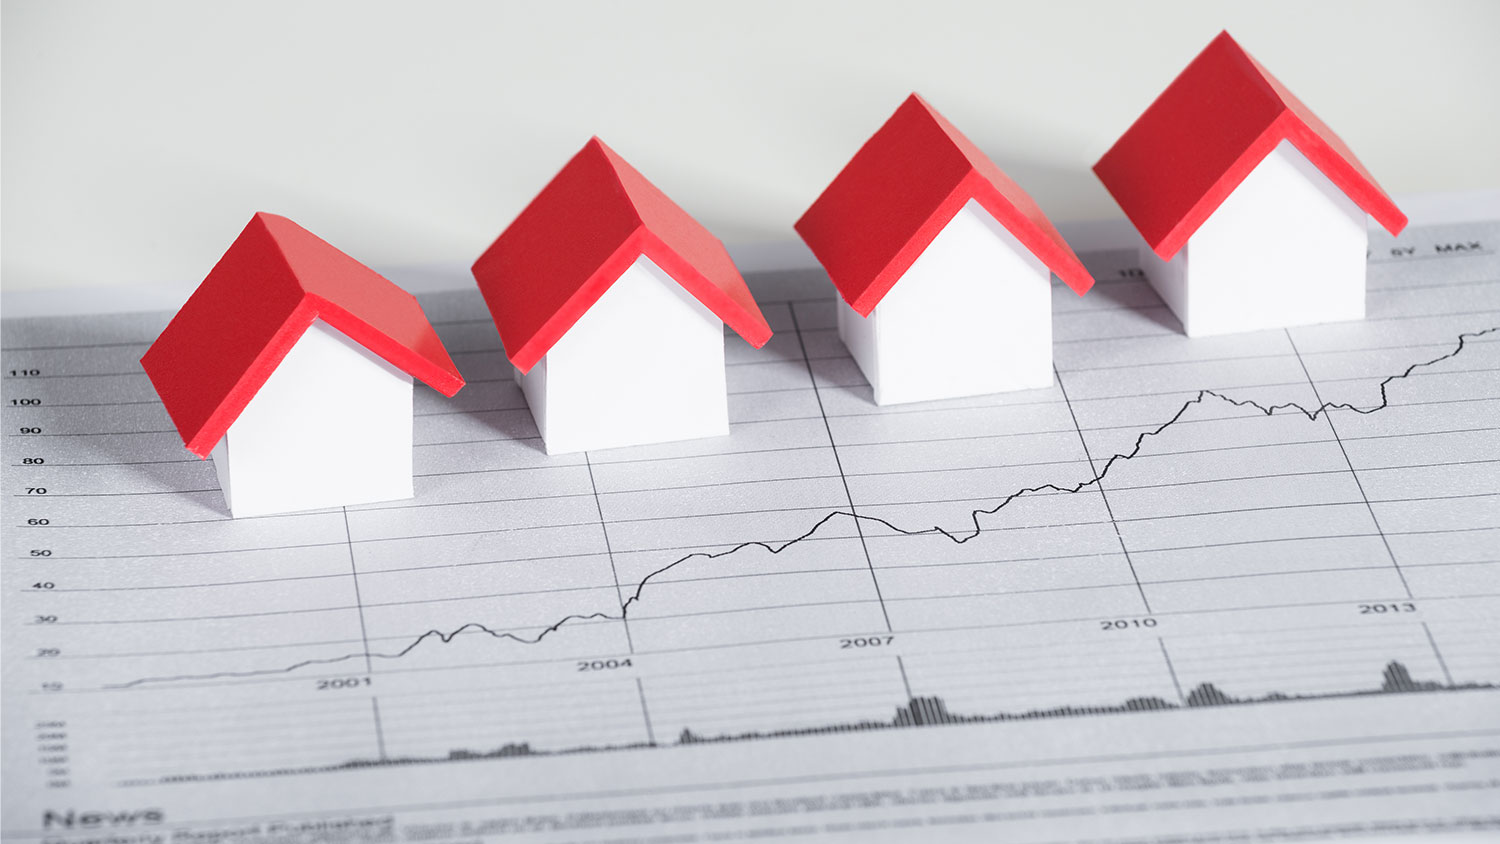 WHY 2020 DOES NOT COMPARE TO THE 2008 HOUSING MARKET CRASH